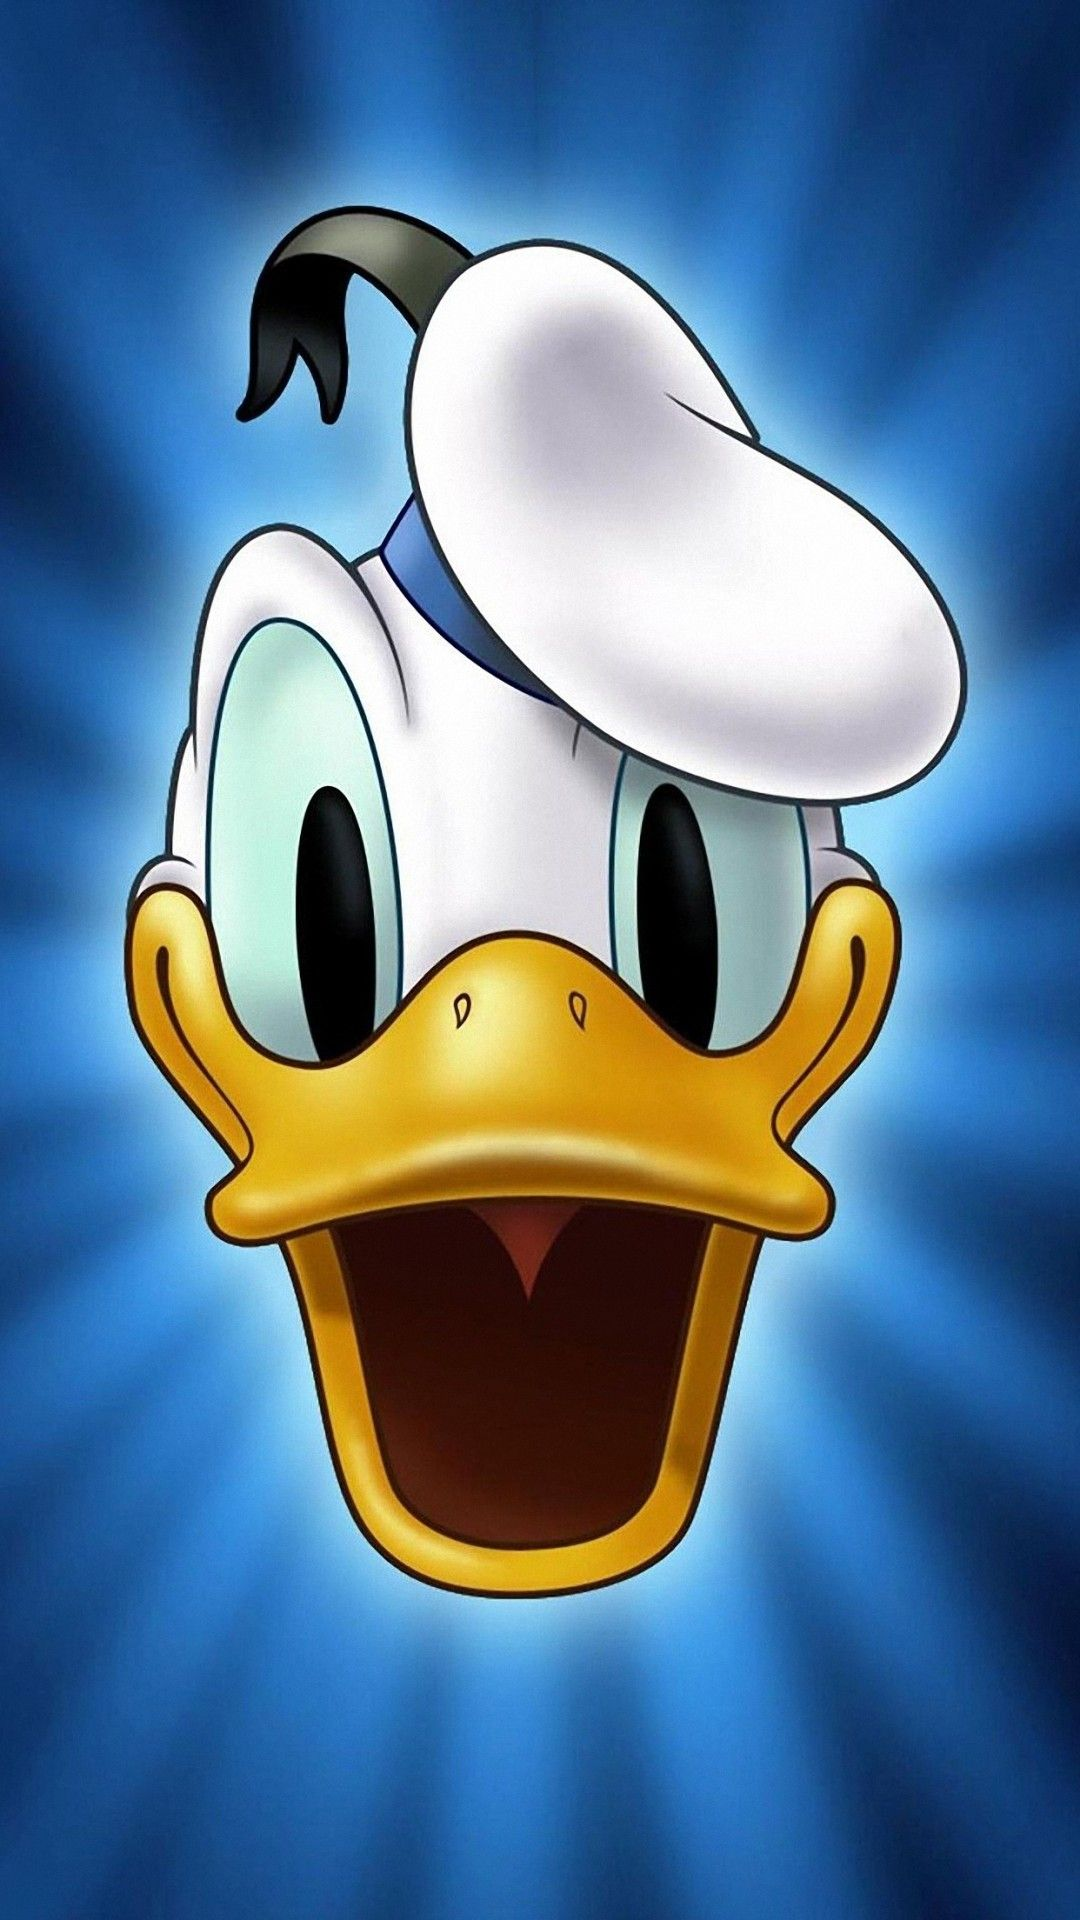 1080x1920 62+ Daffy Duck Wallpapers on WallpaperPlay